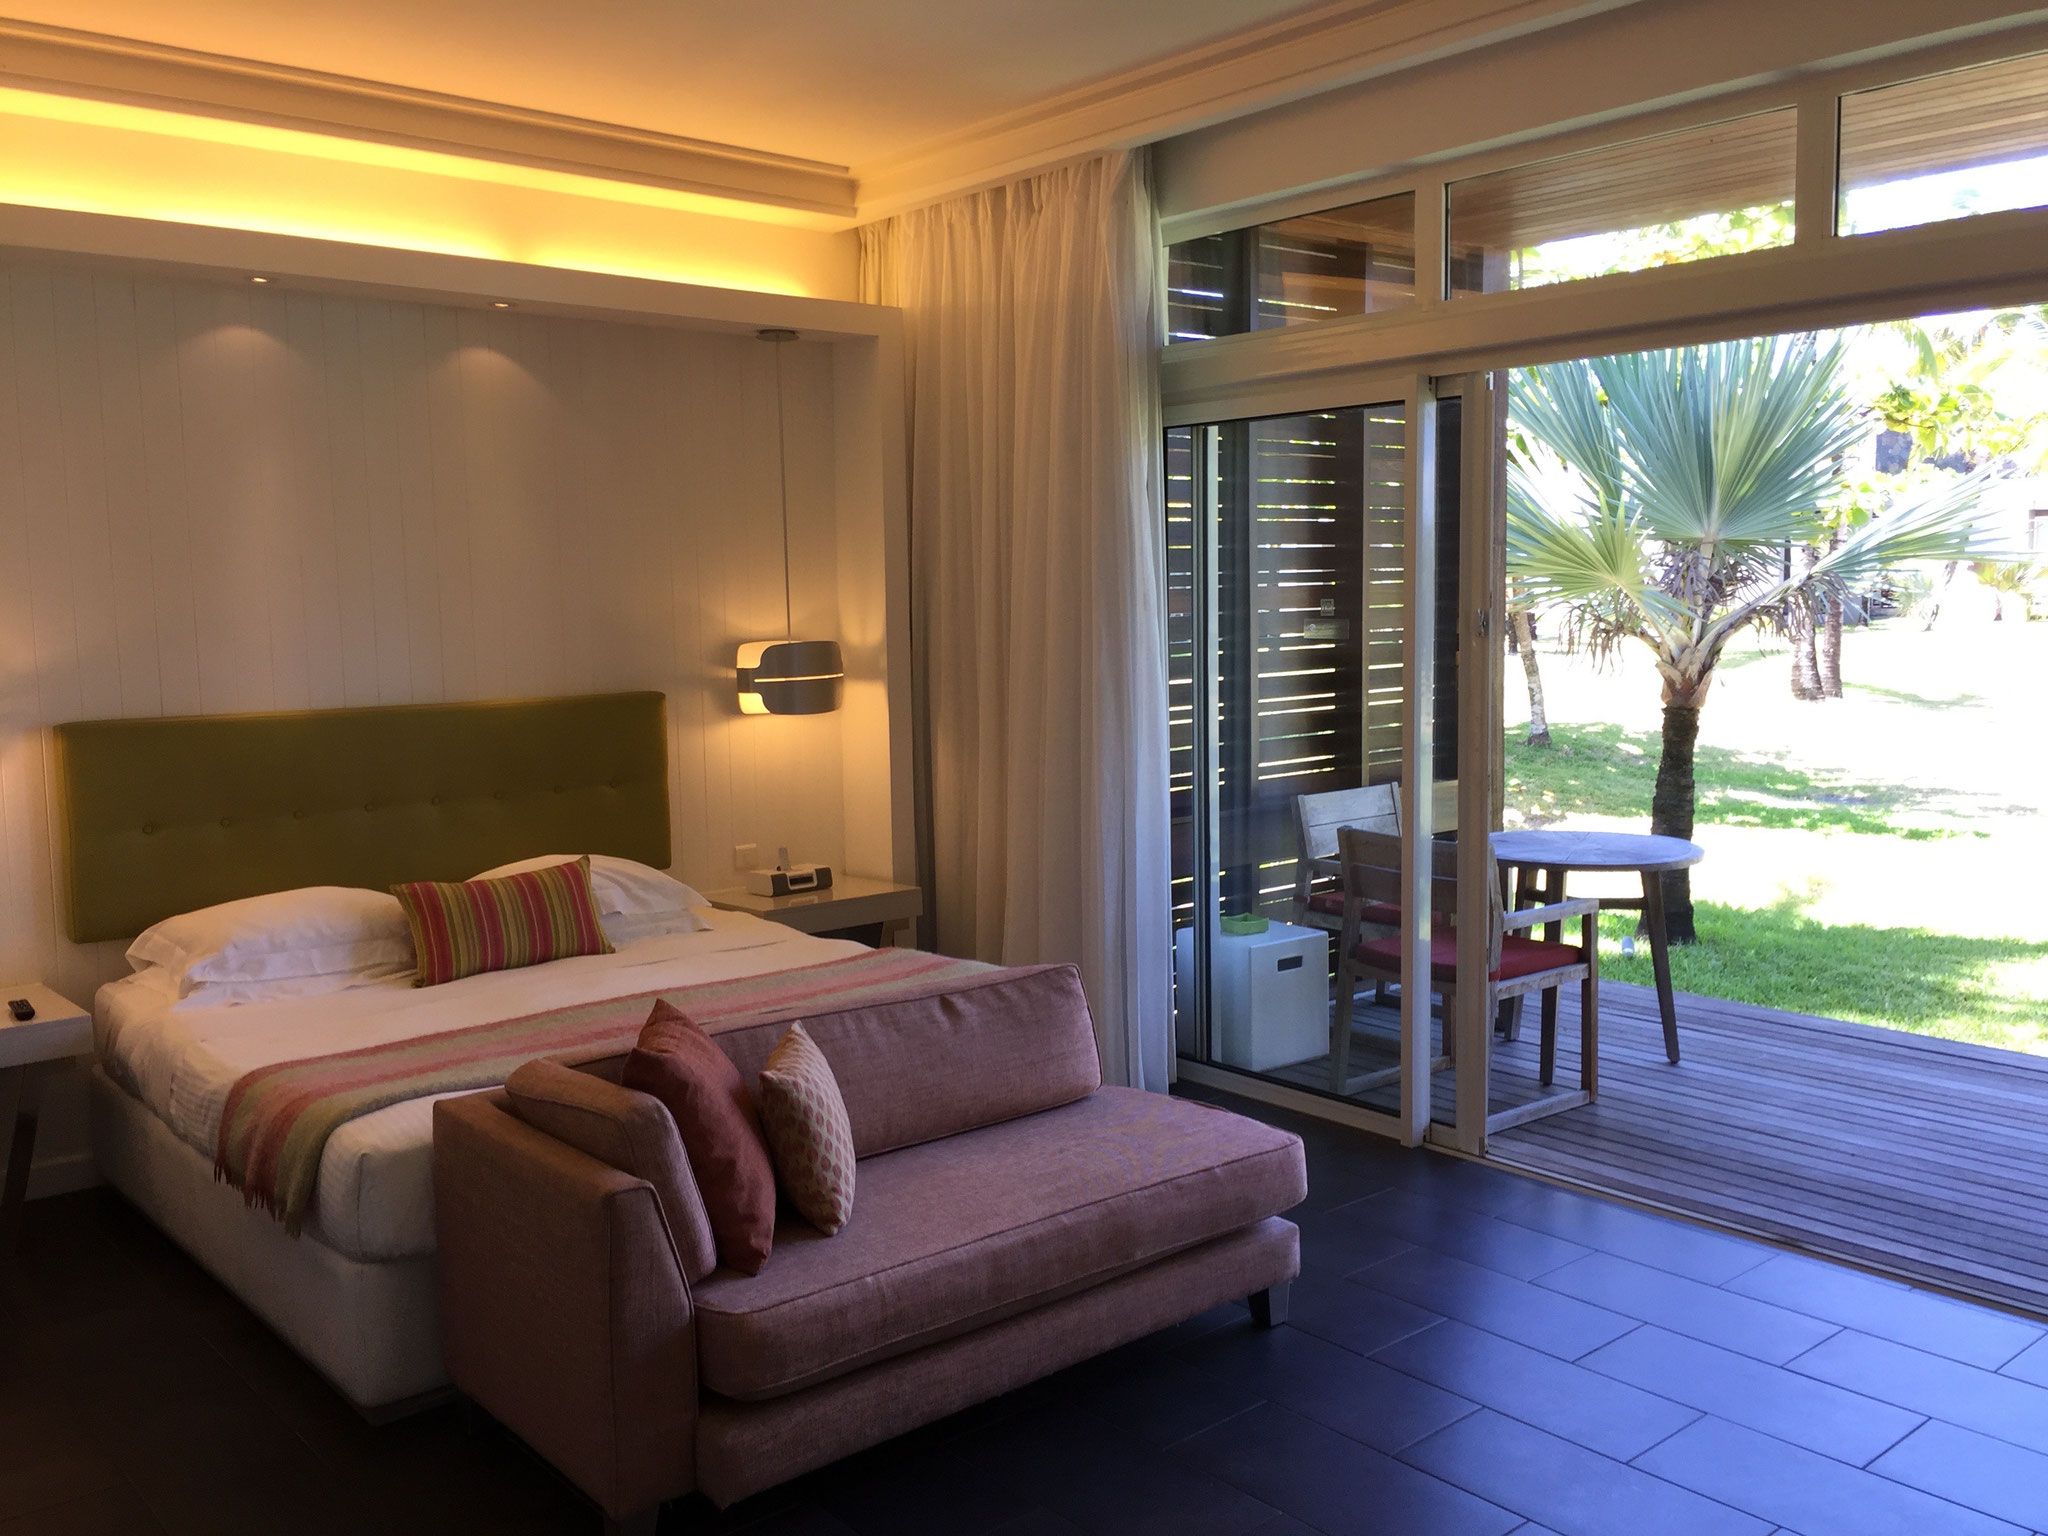 VENTE CHAMBRE D'HOTEL 5* IHS LE LONG BEACH ILE MAURICE